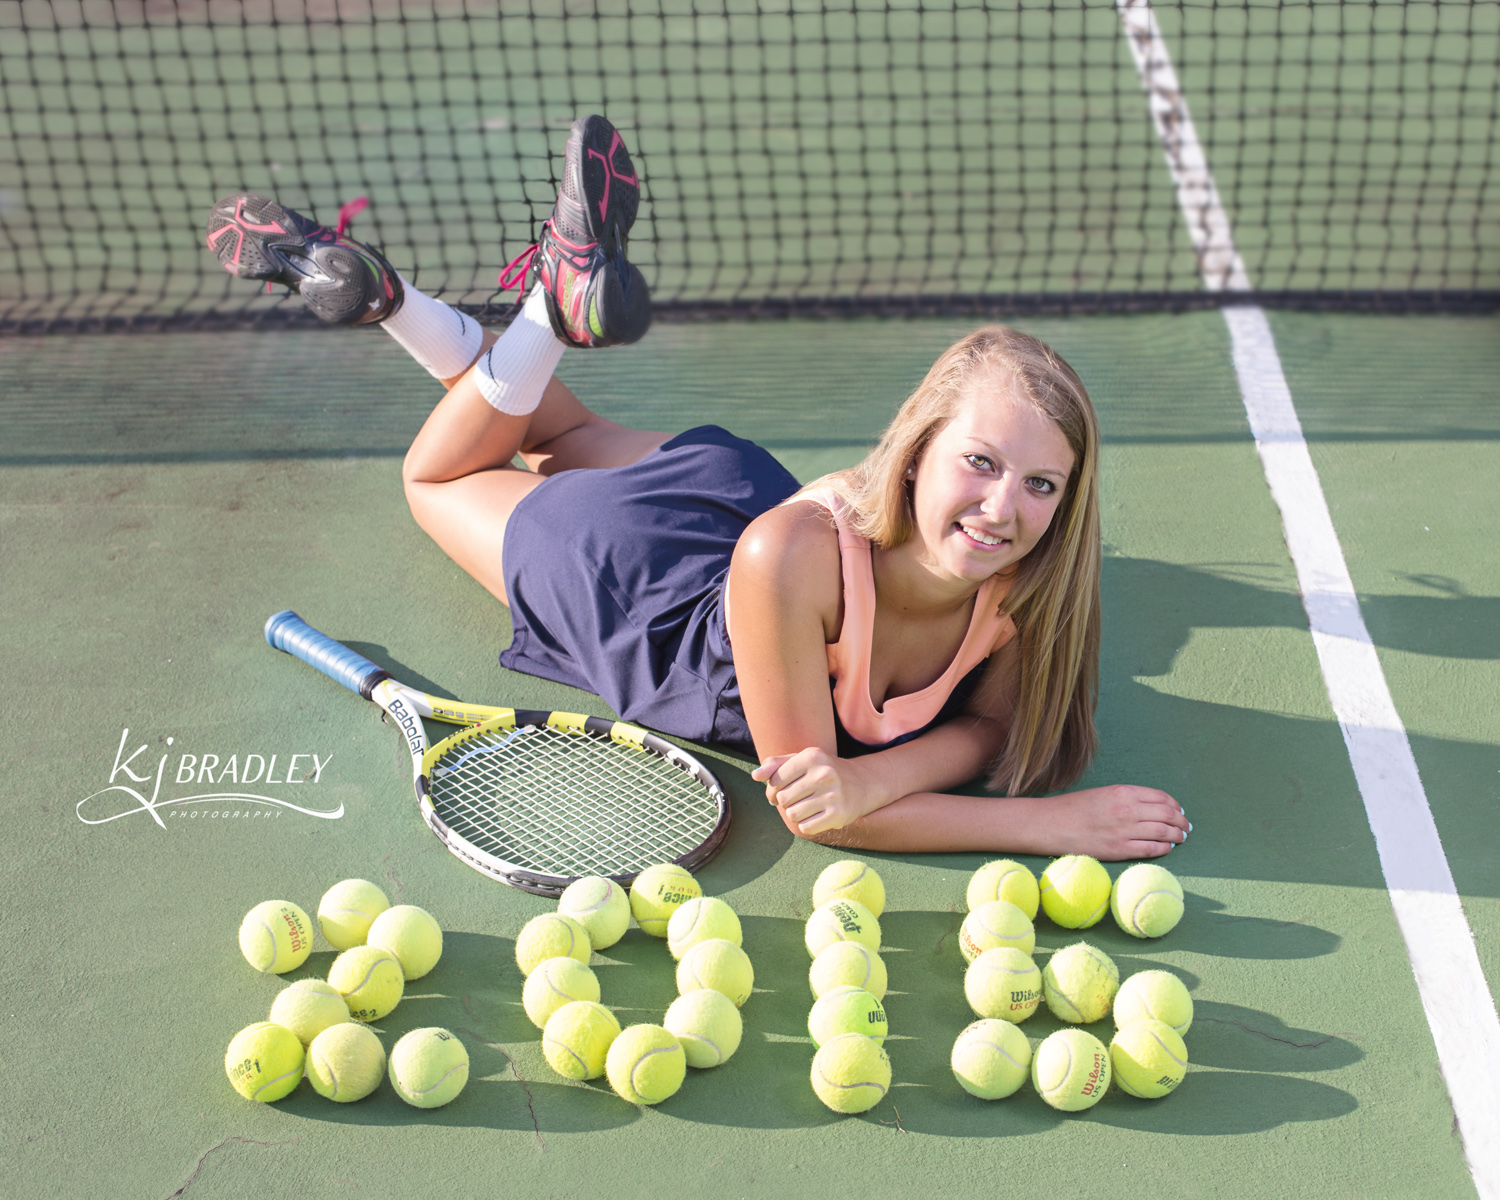 class_of_2015_tennis_senior_KJ_Bradley_Photography